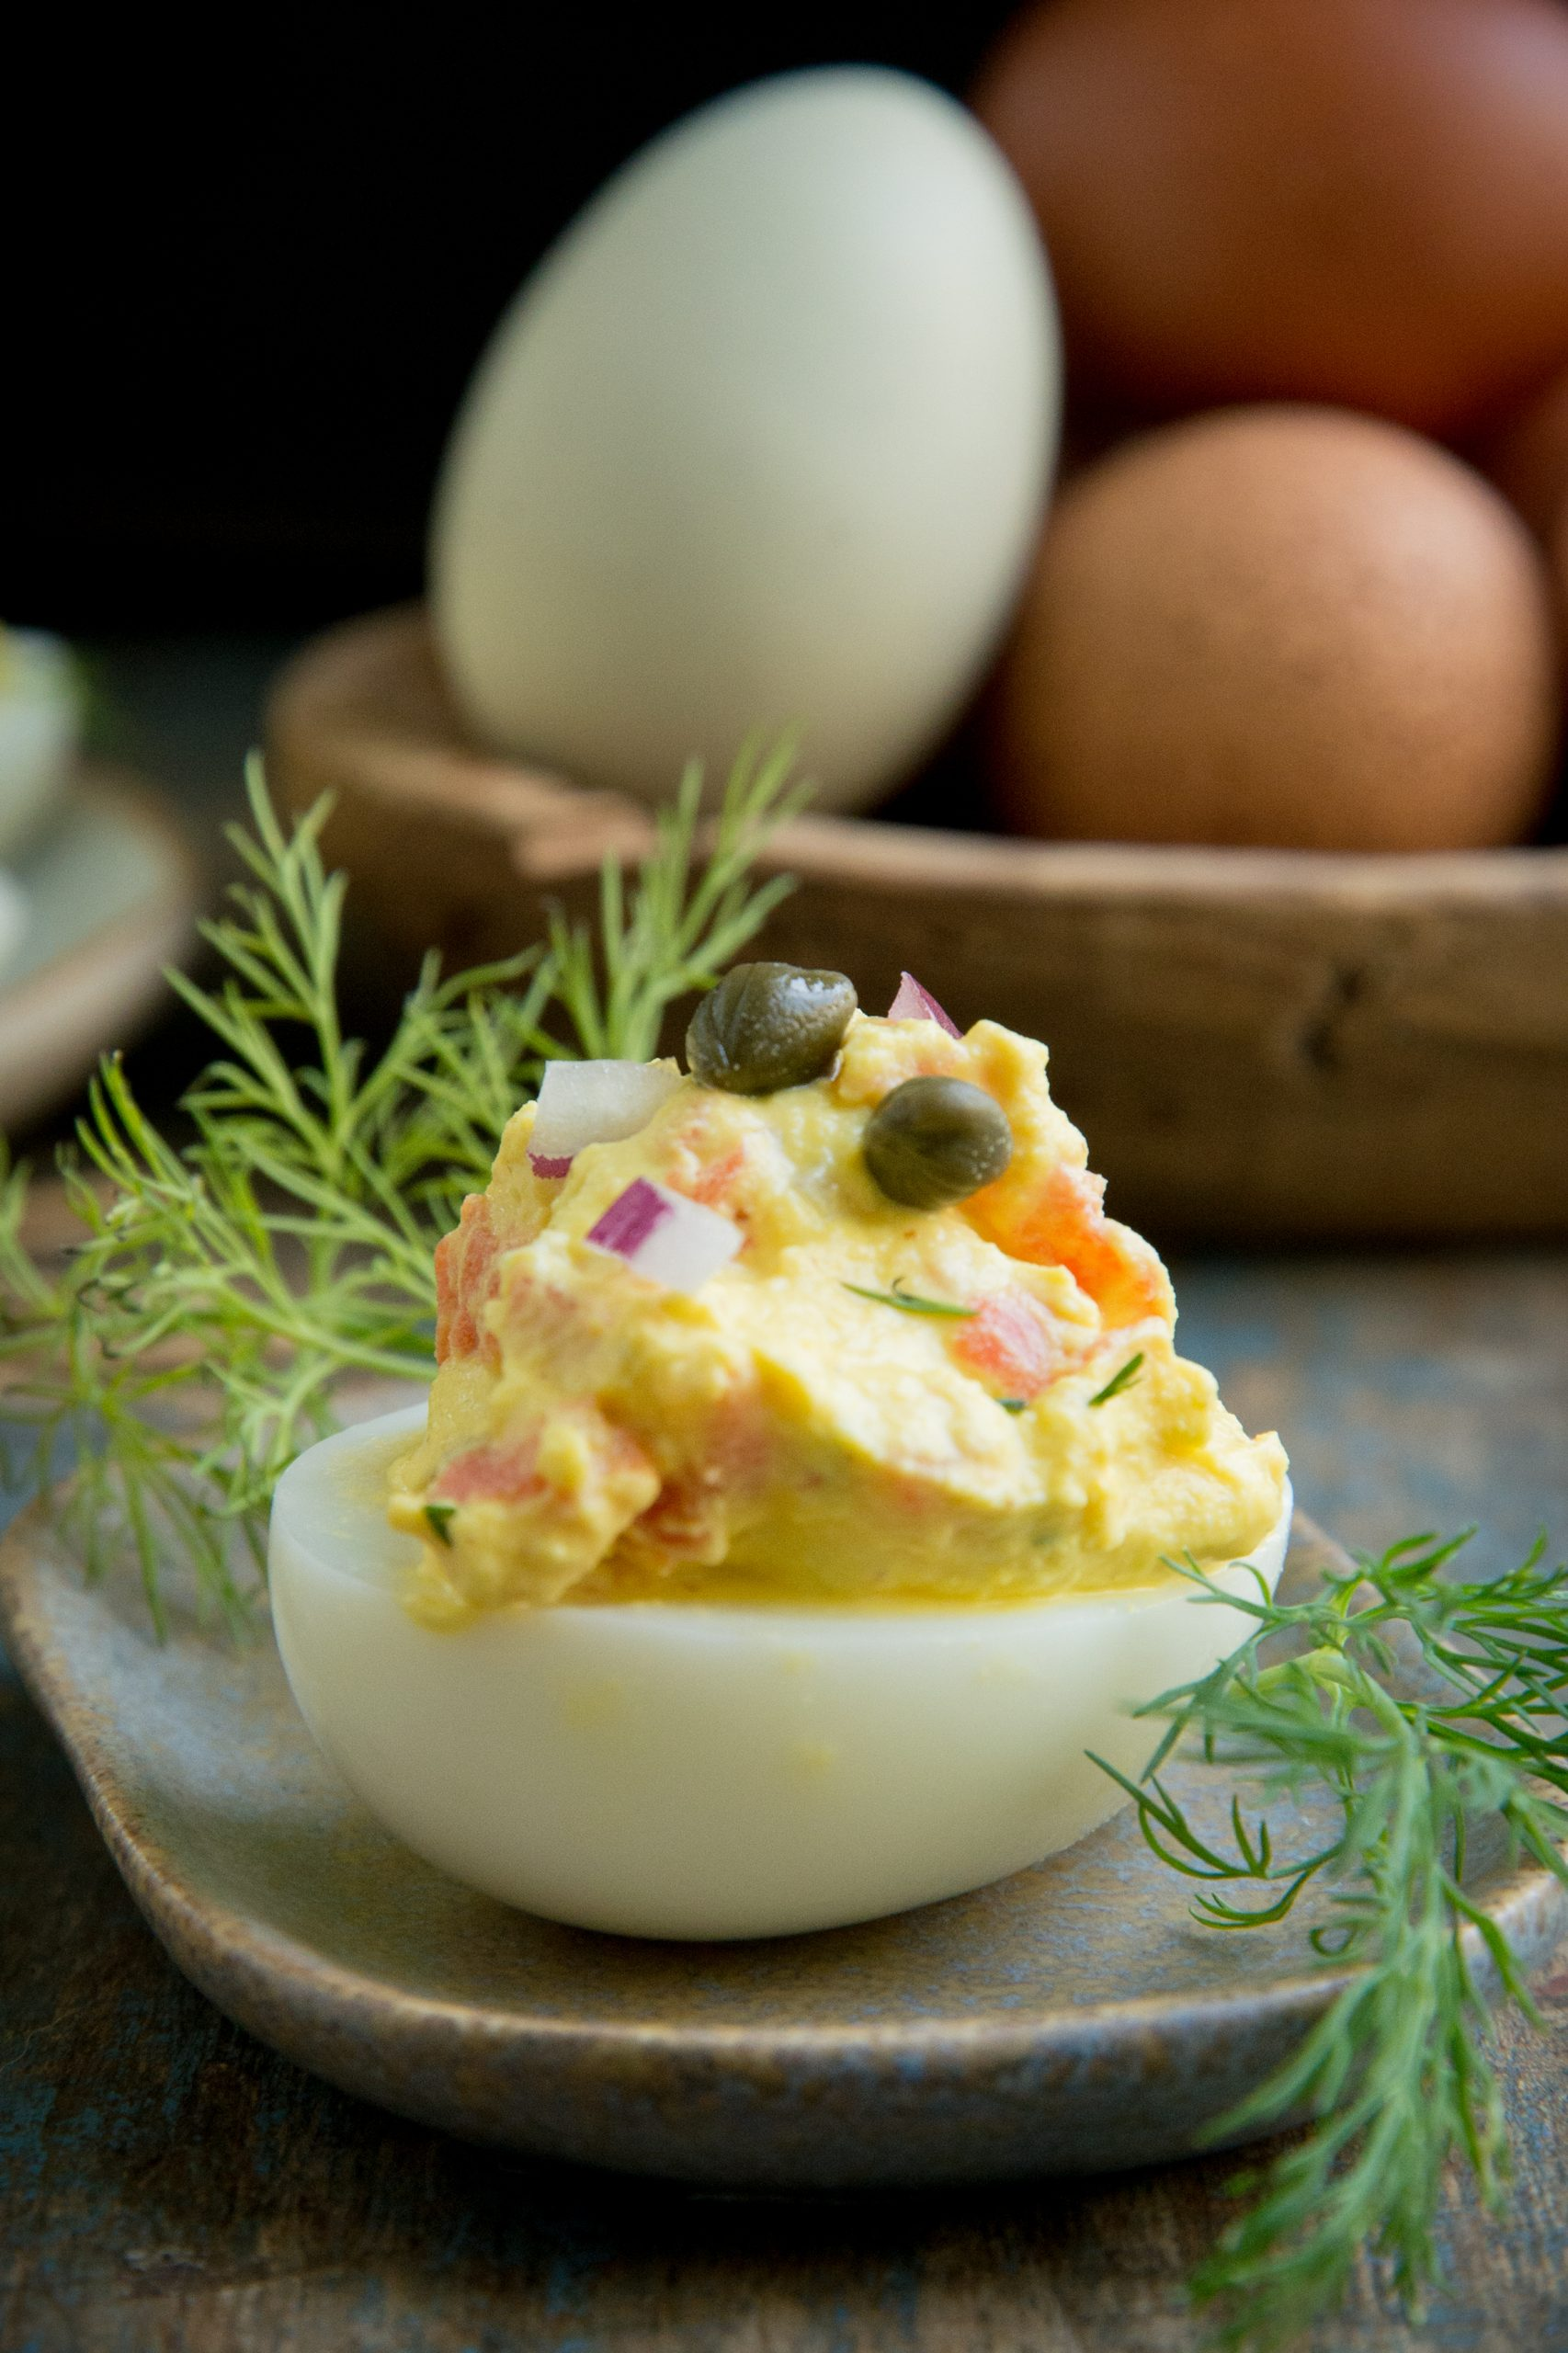 A single Smoked Salmon Deviled Egg.